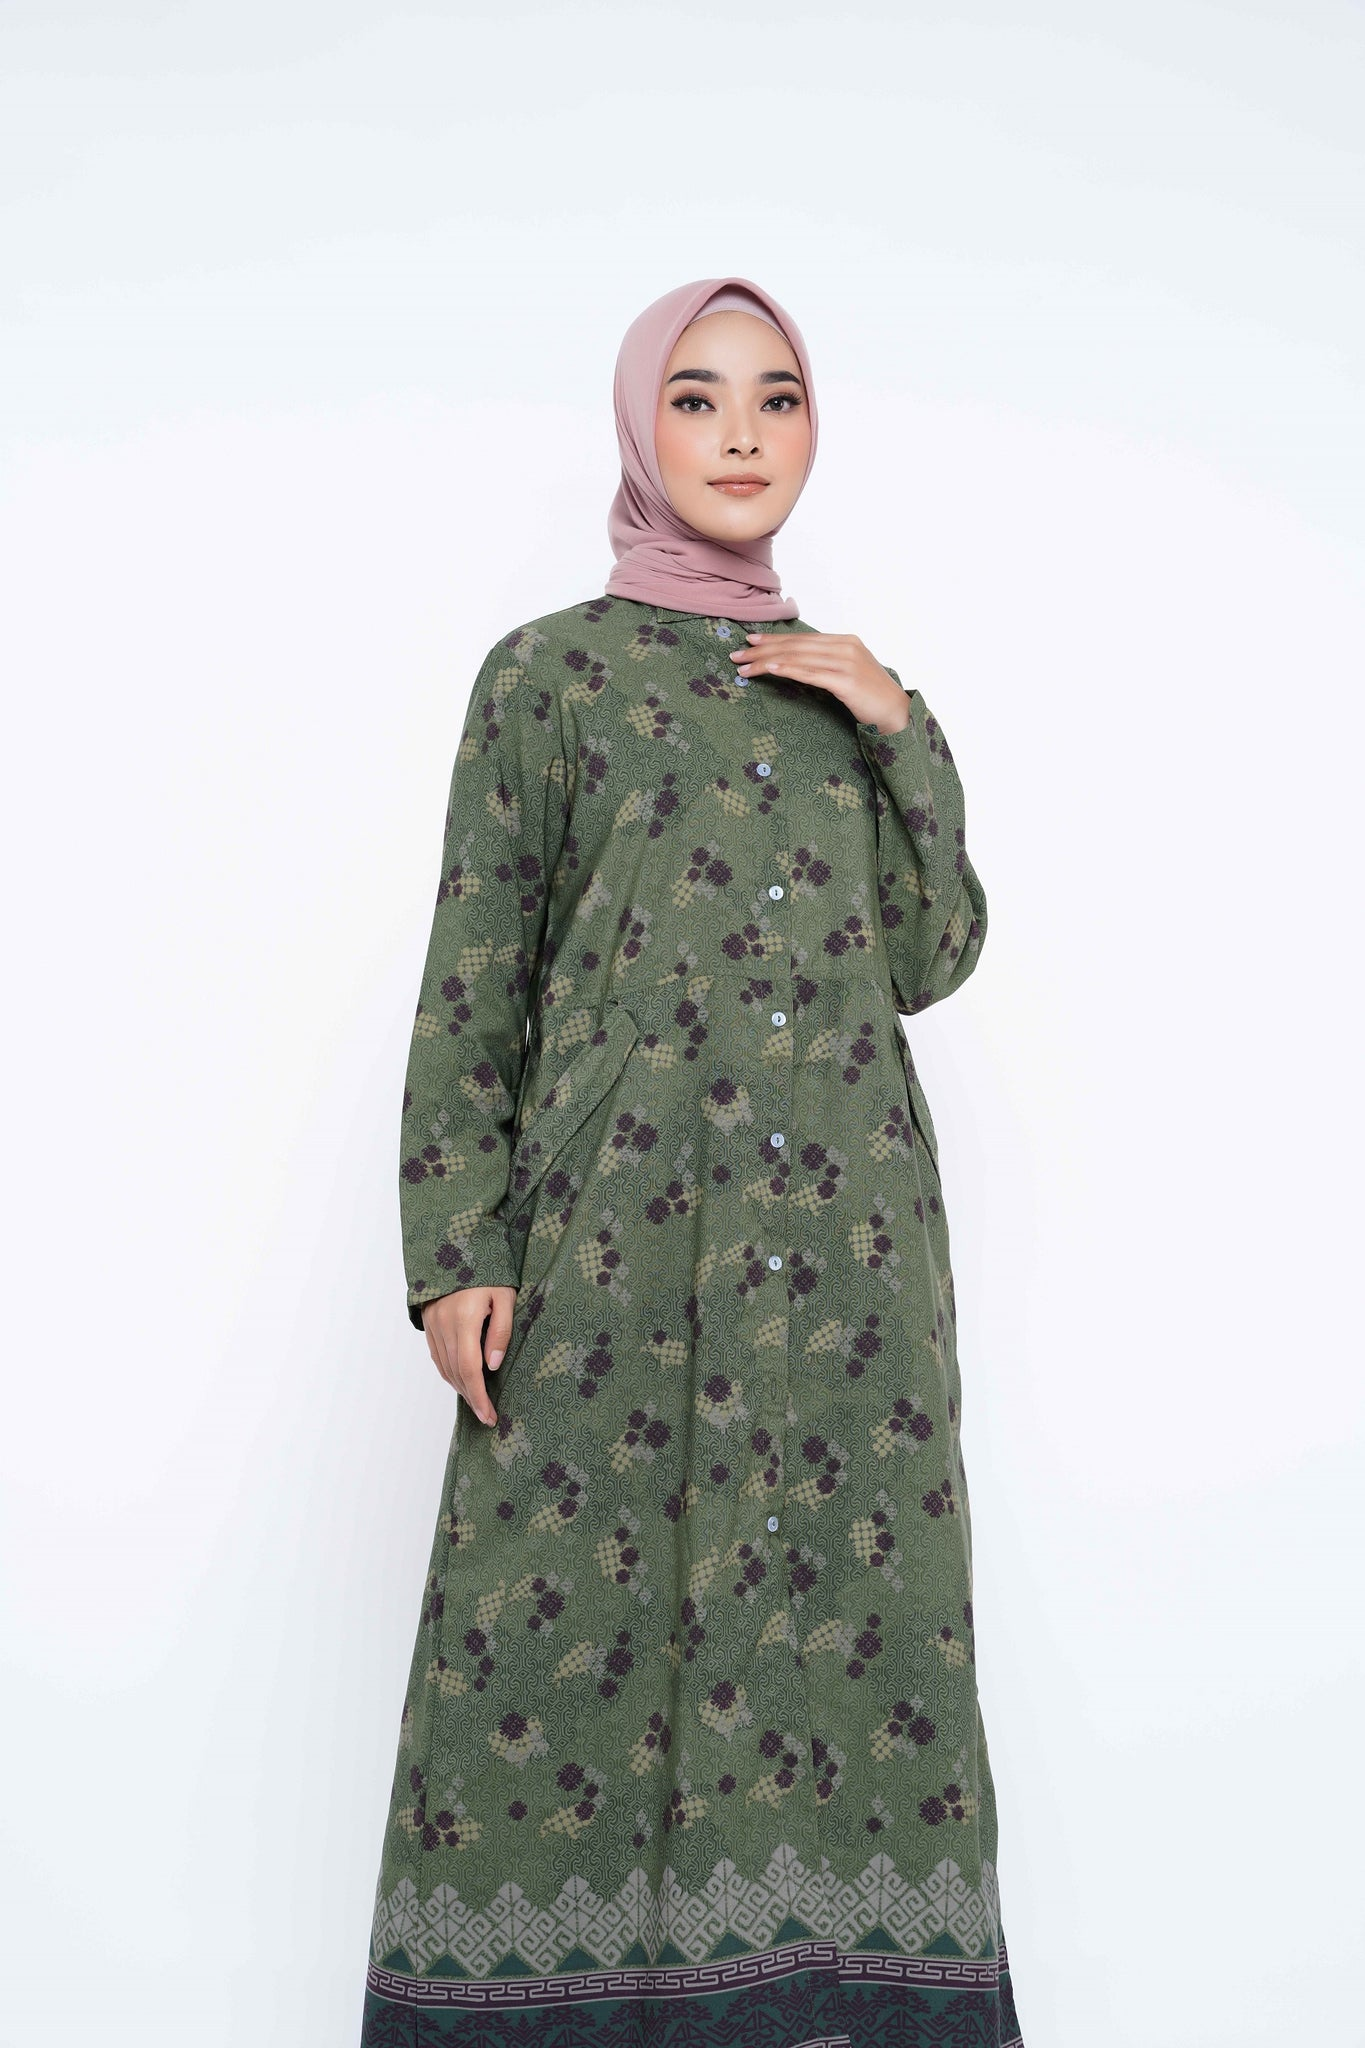 ZM - Halia Forest Dress - Jelita Indonesia - Edisi Makassar